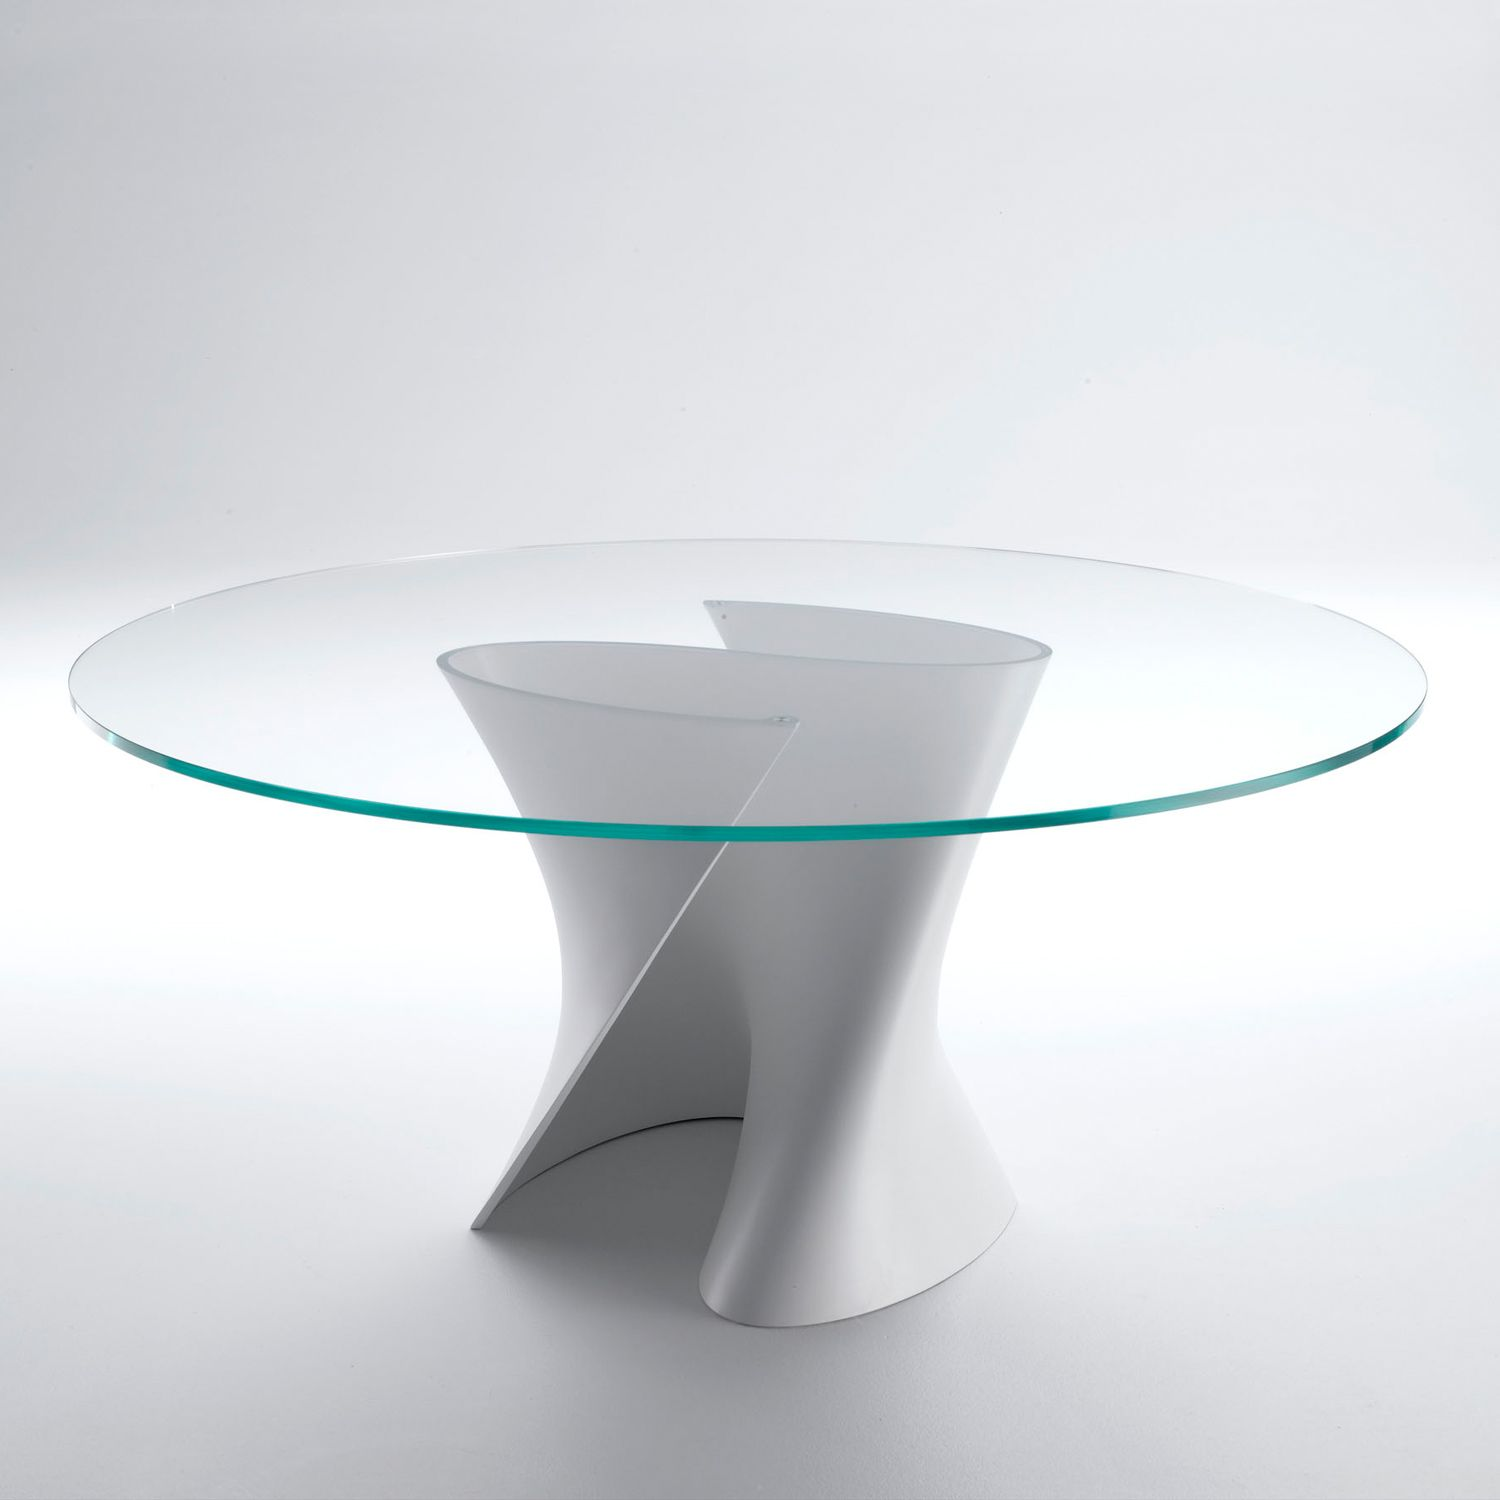 Futuristic Chairs For Modern Interior Chair Idea: Futuristic Chairs Round  Glass Table With Unique Leg